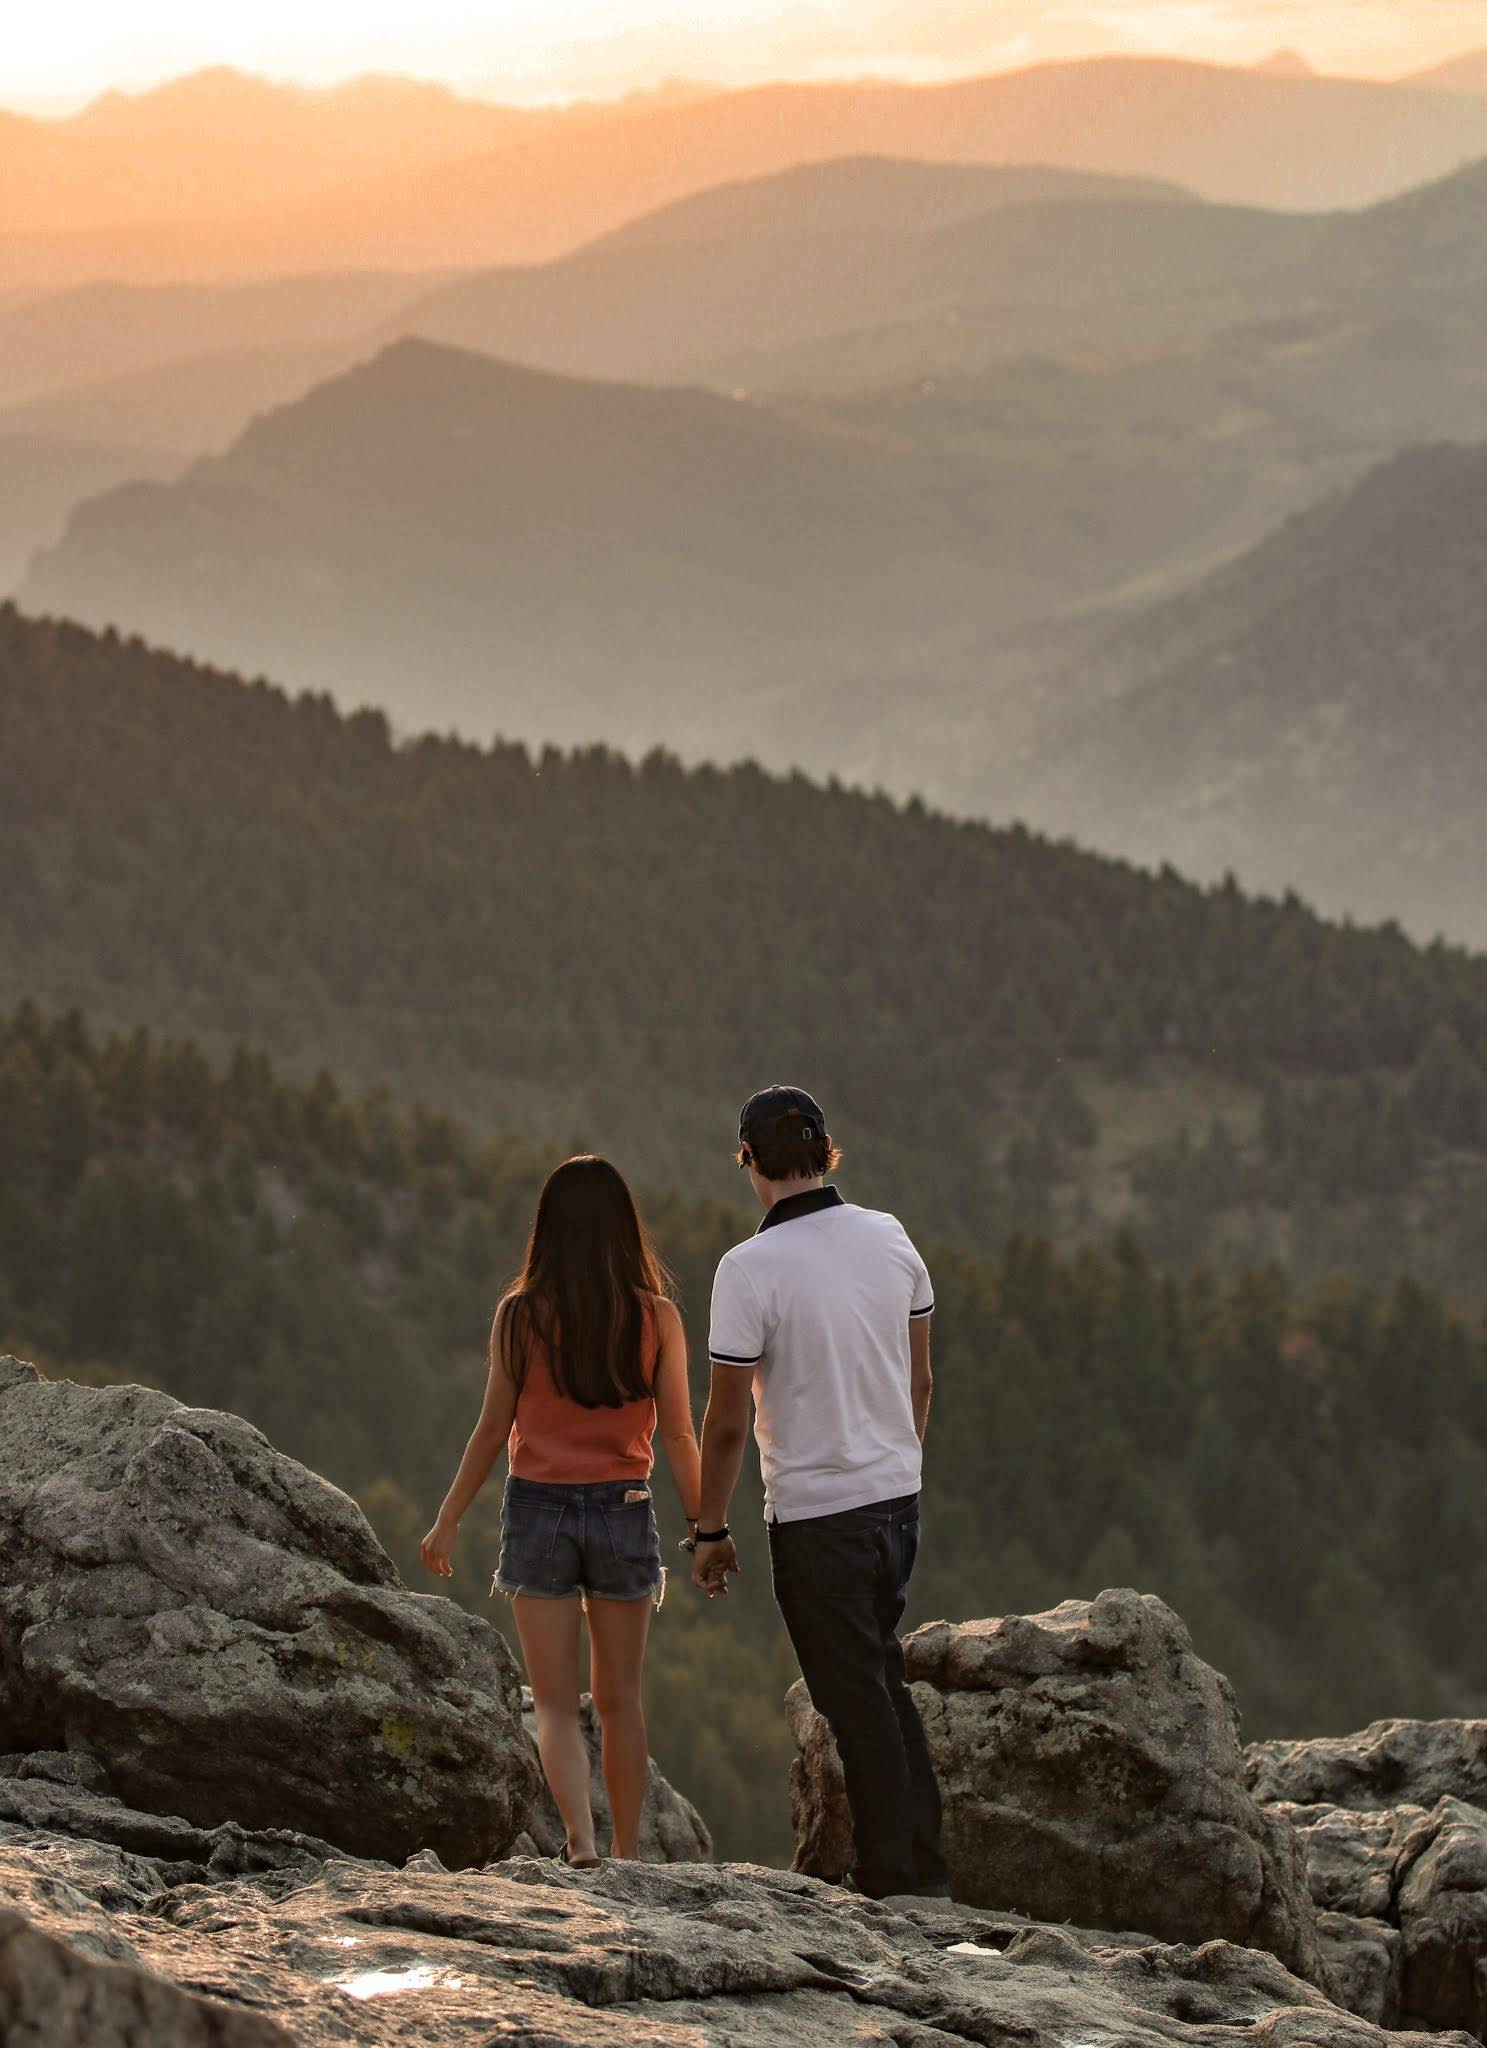 Henne Engagement Ring Couple Jordan and Linda Overlooking the Rocky Mountains